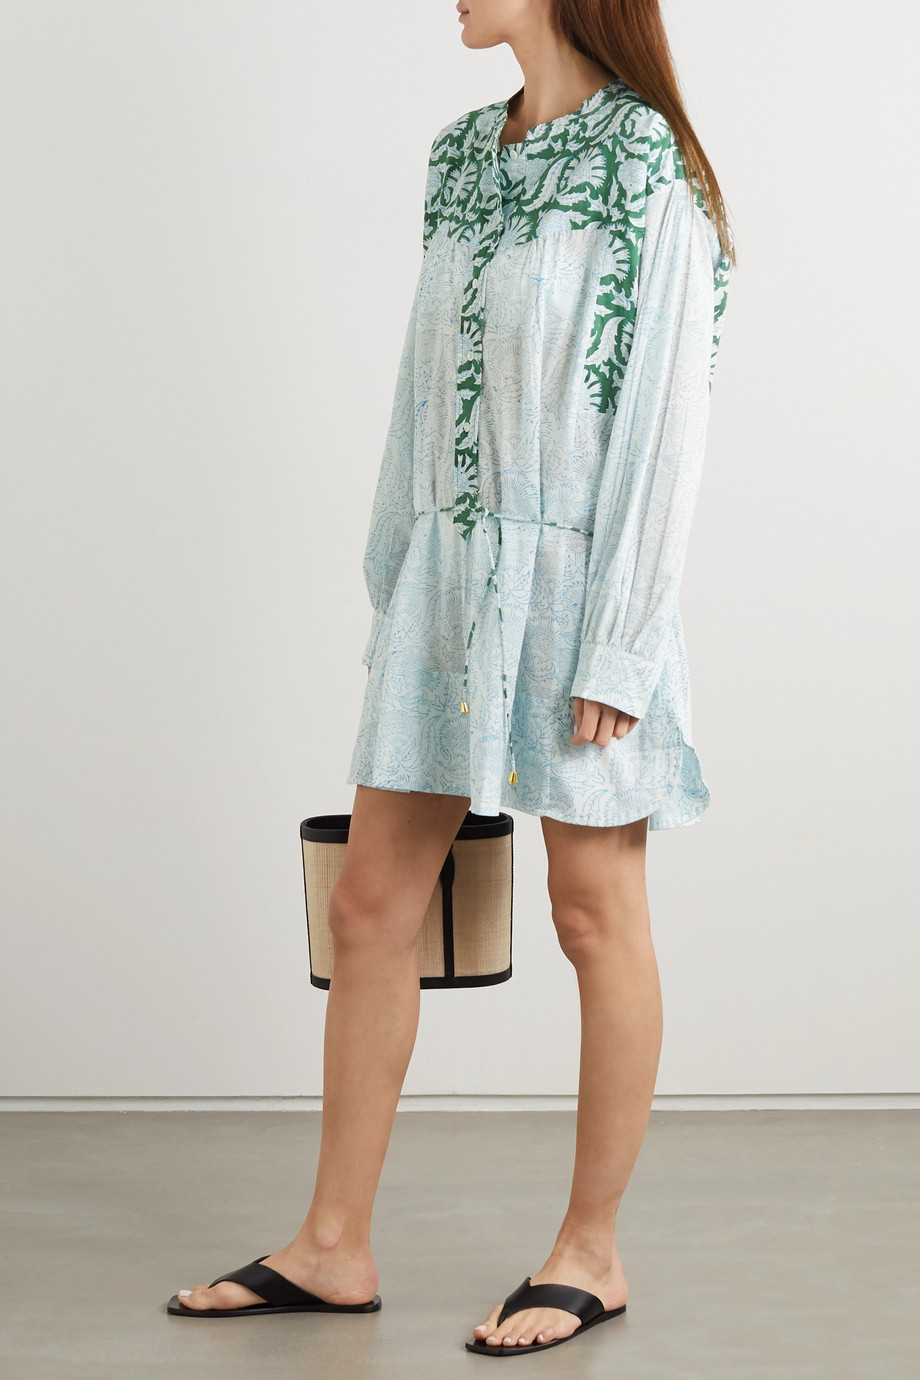 HANNAH ARTWEAR + NET SUSTAIN Goa paneled printed cotton mini shirt dress